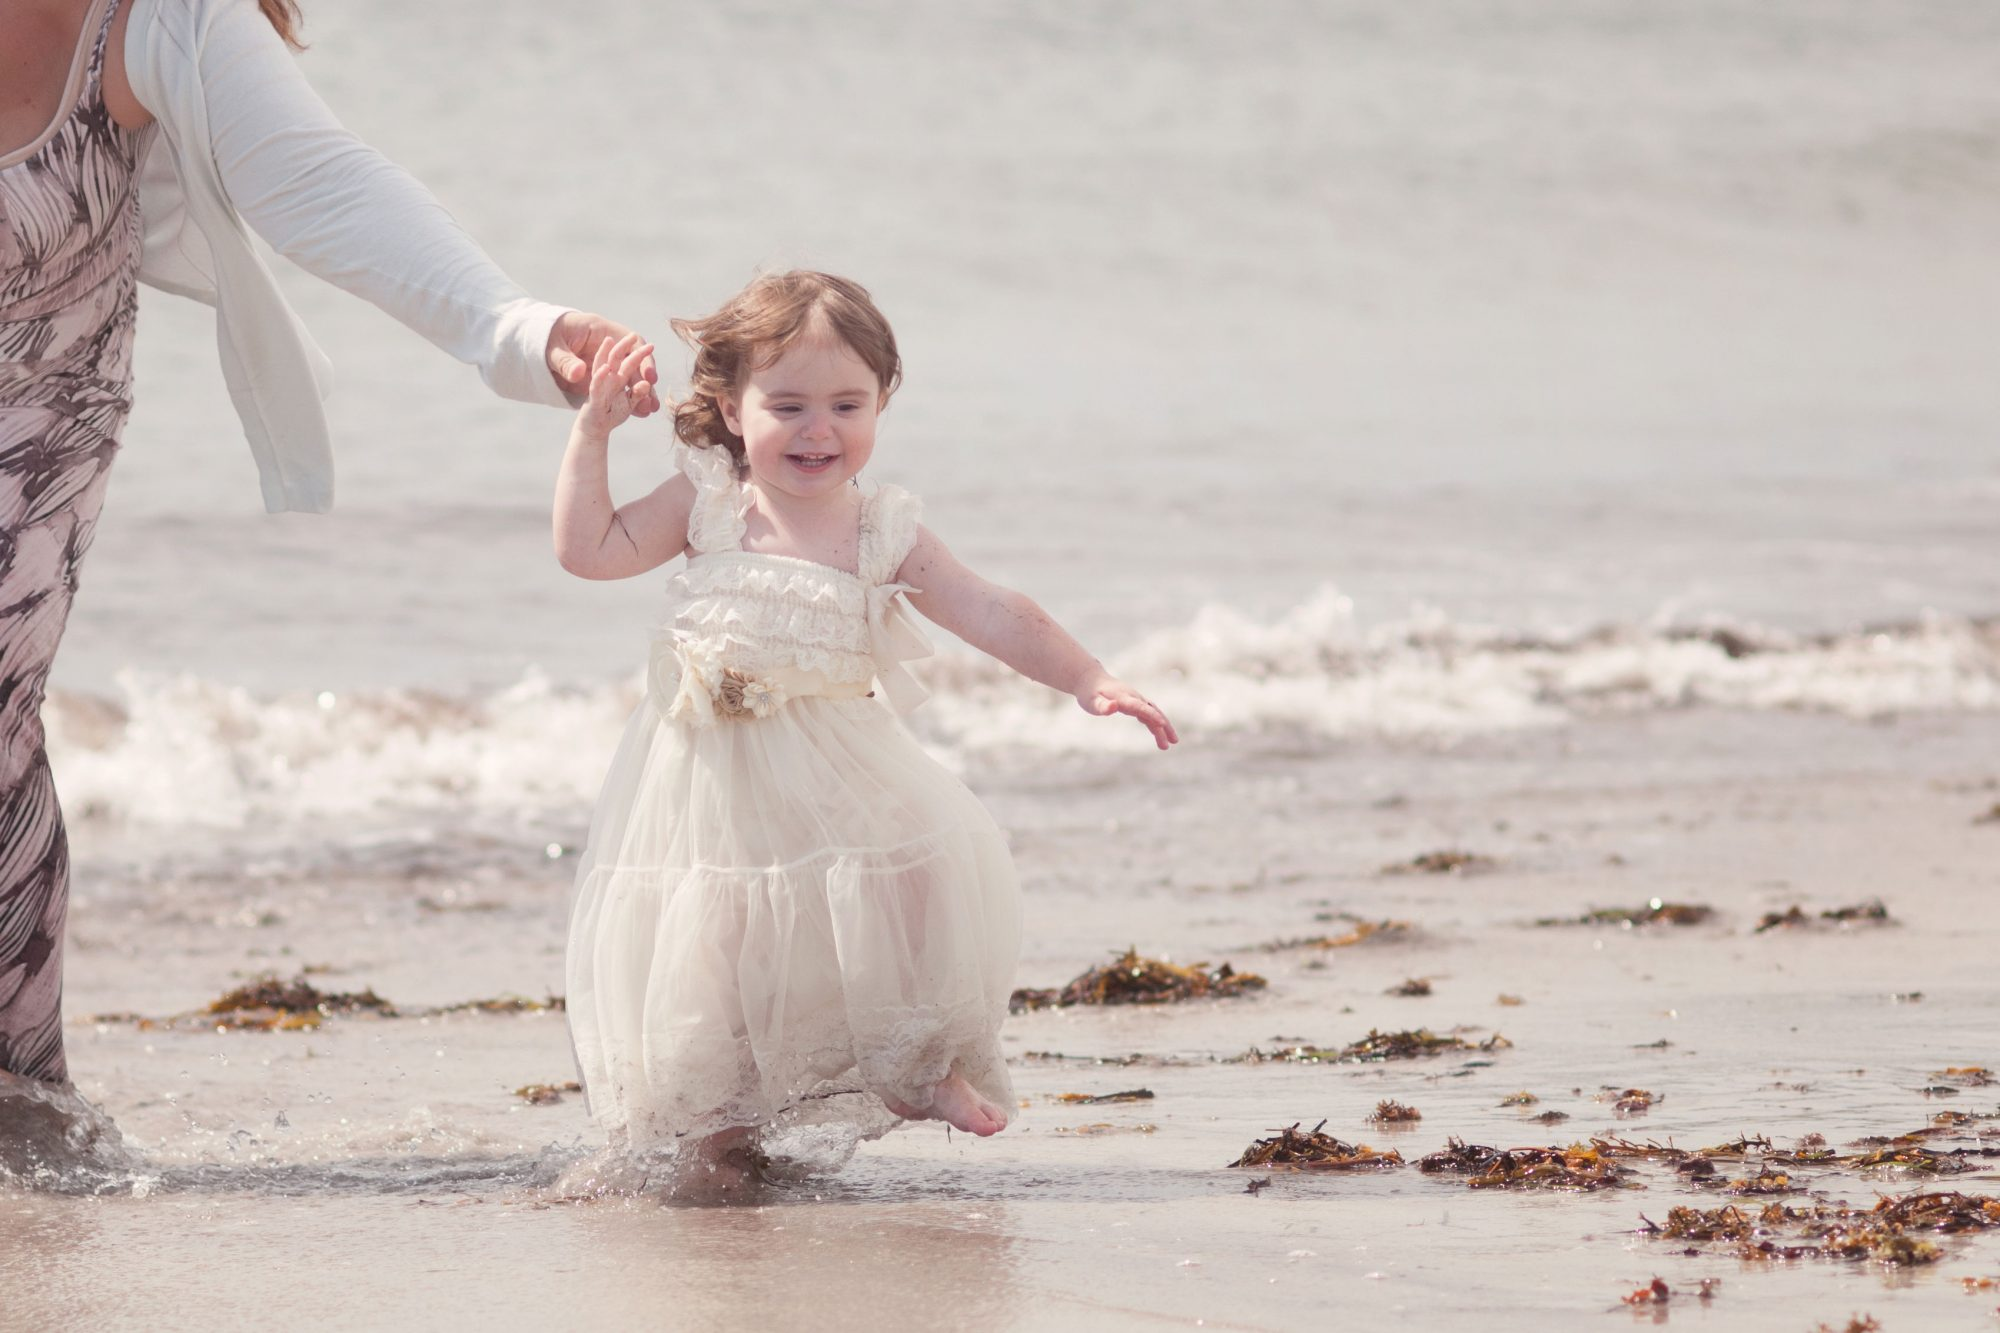 Little girl giggeling at the beach with mom